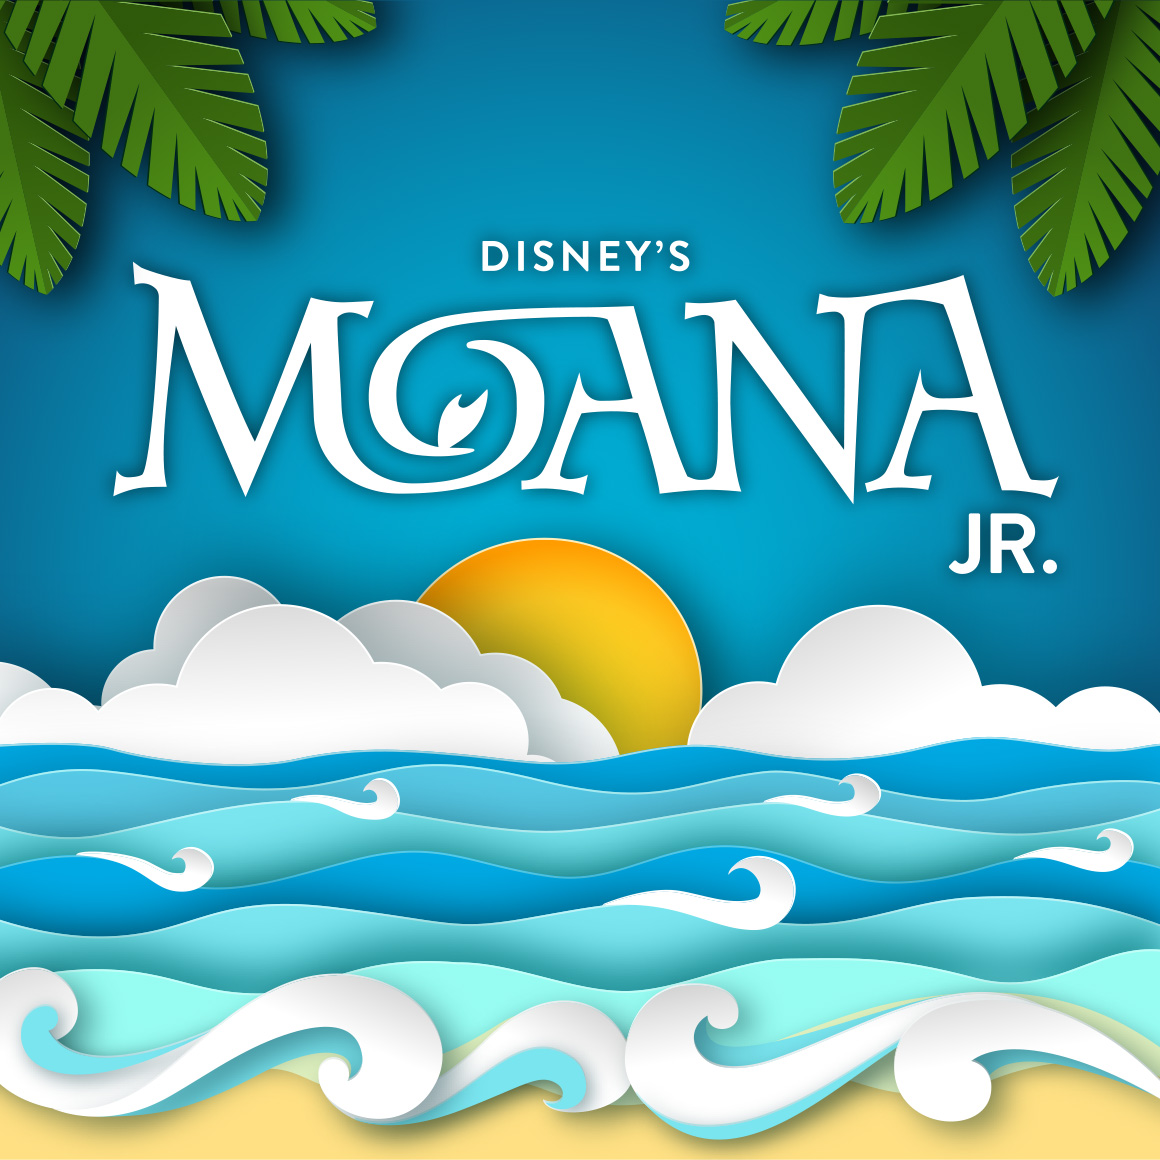 2019 Disneys Moana Jr logo